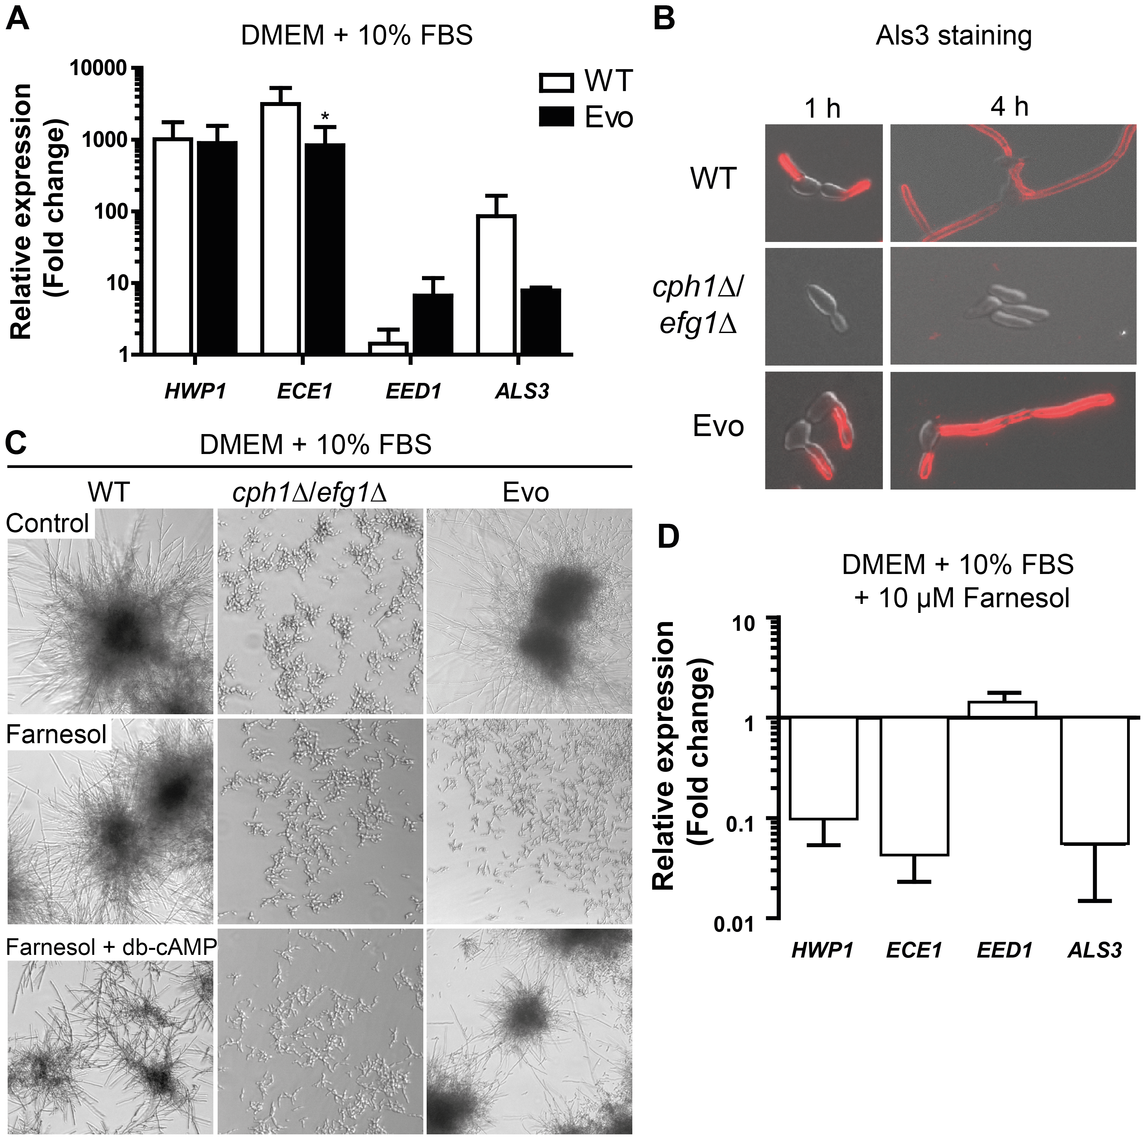 Analysis of hyphae-associated gene expression, Als3 surface expression and response to farnesol.